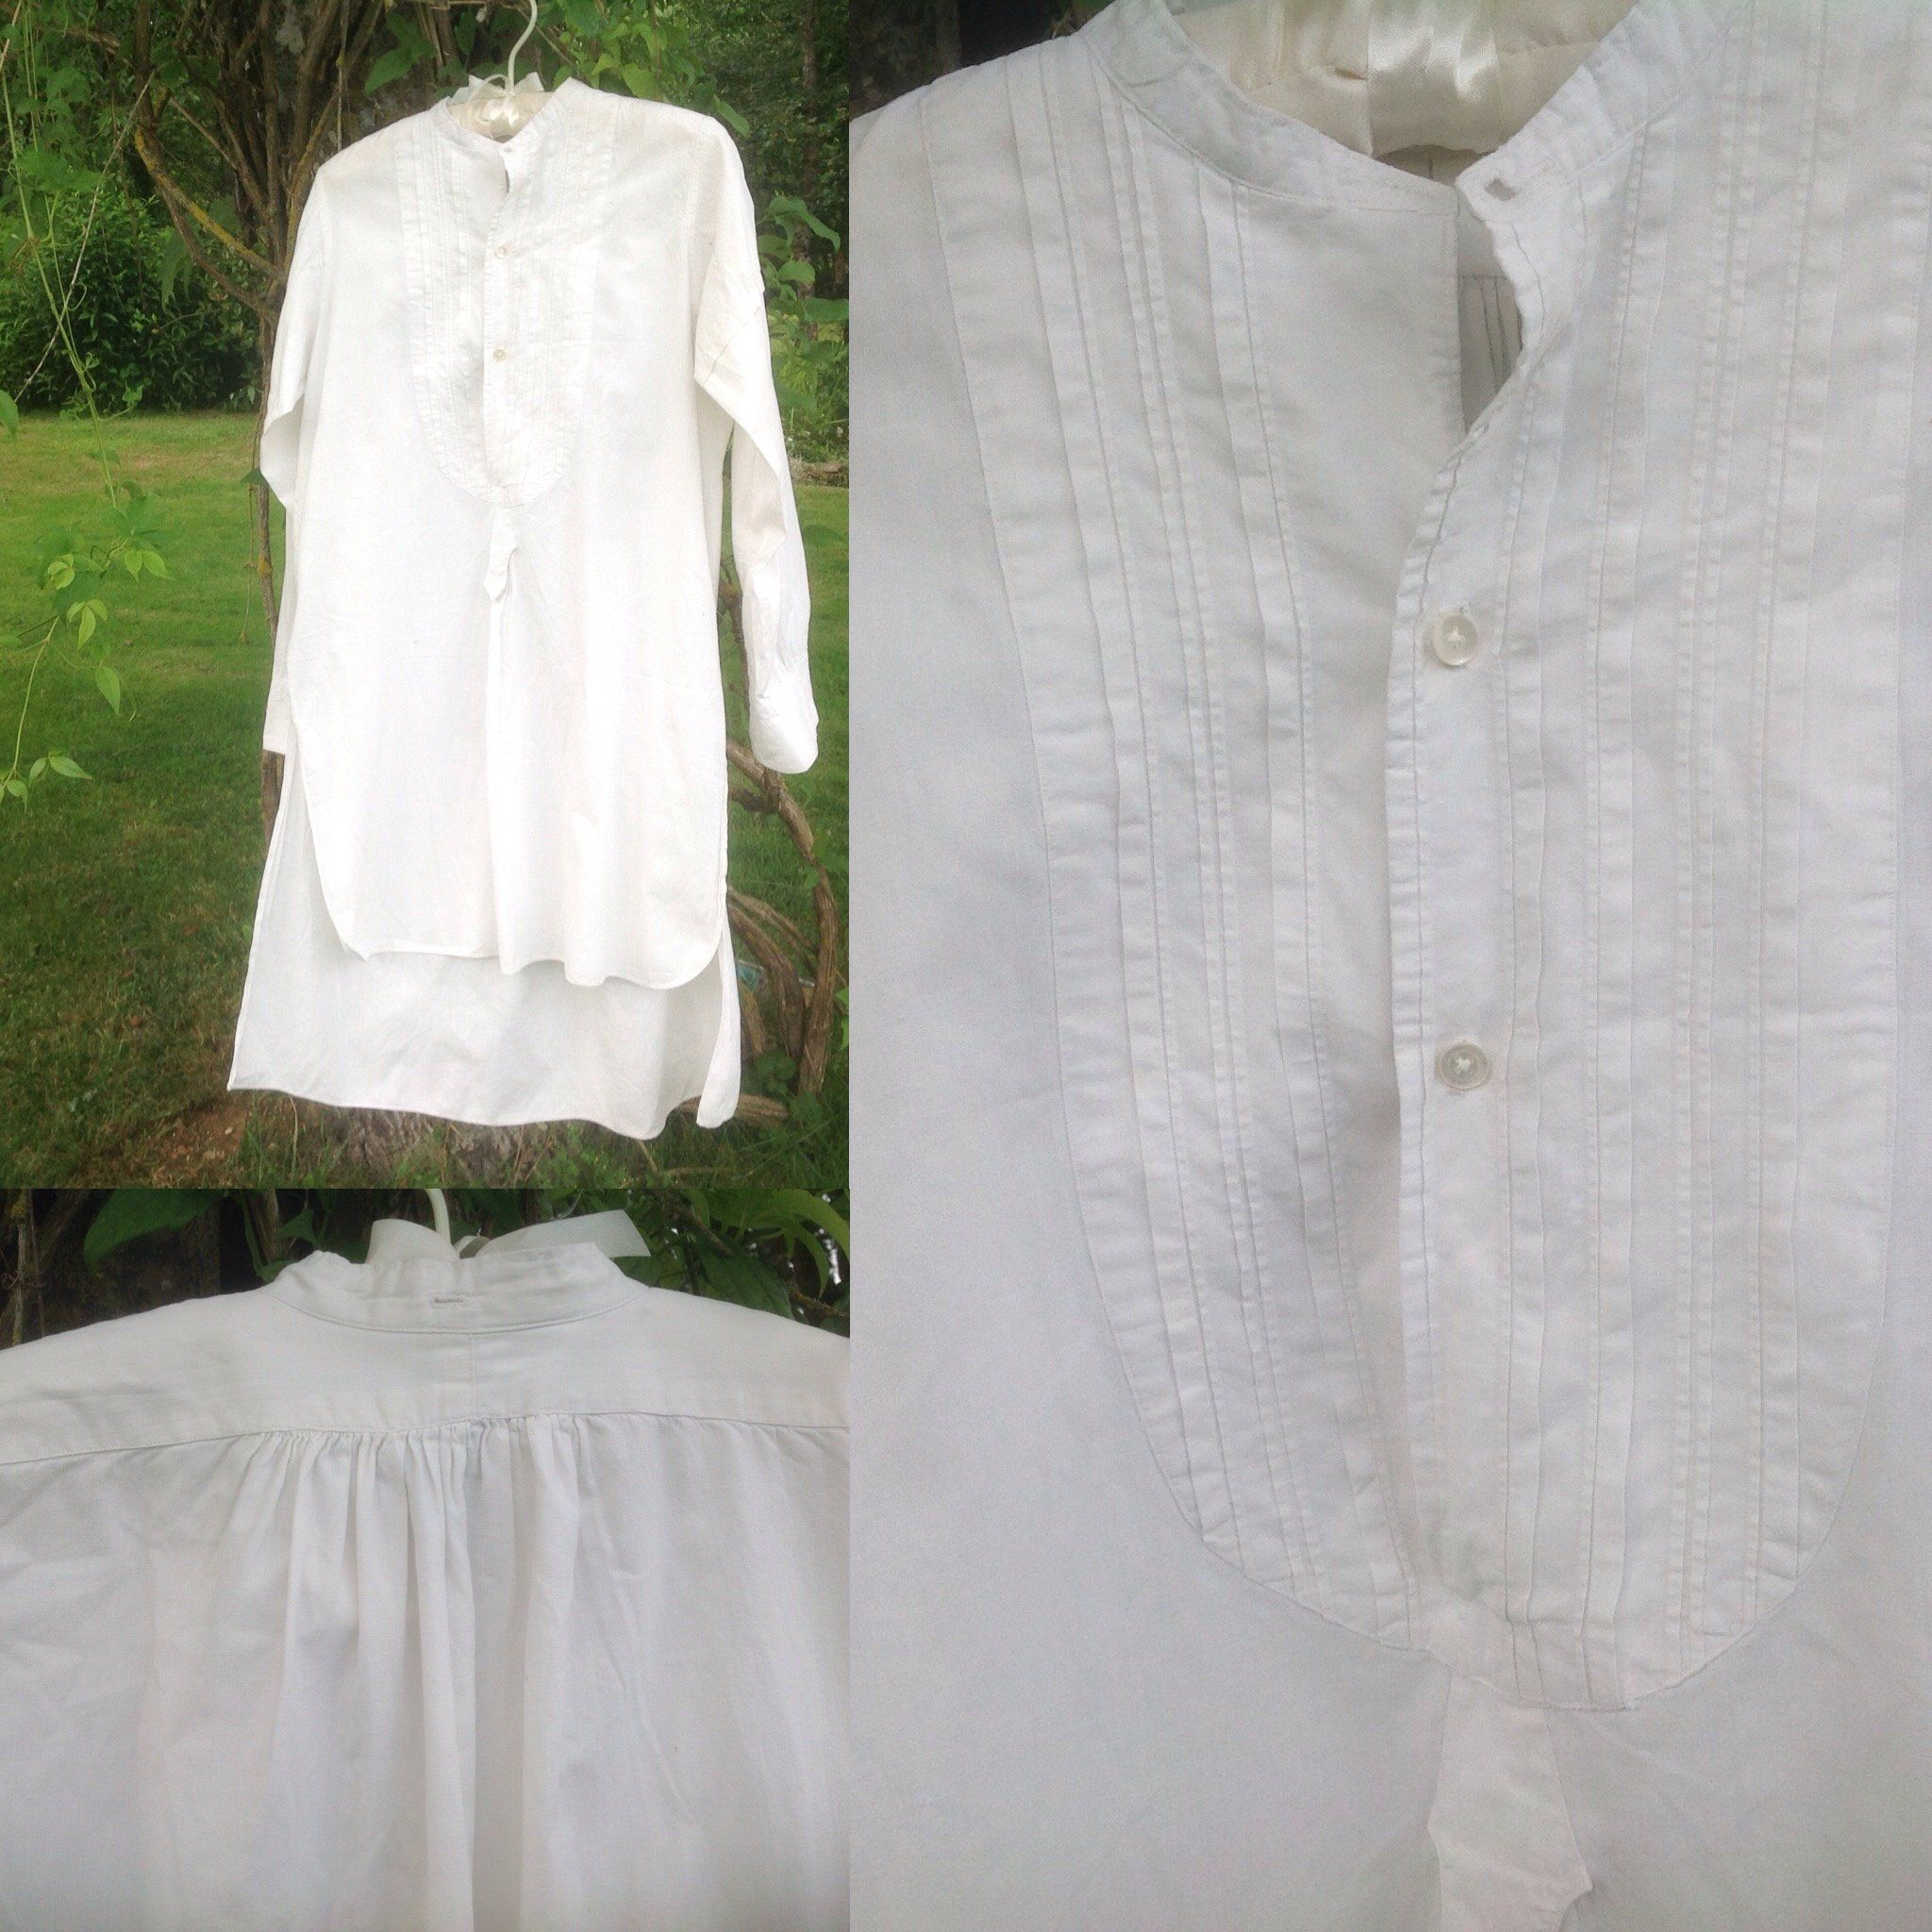 Antique French White Cotton Bib Front Pintucked Dress Shirt Lovely Vintage Shirt With Bottoned Tab Beautifully Handmade 14 Neck Vintage Shirts Shirt Dress Fashion